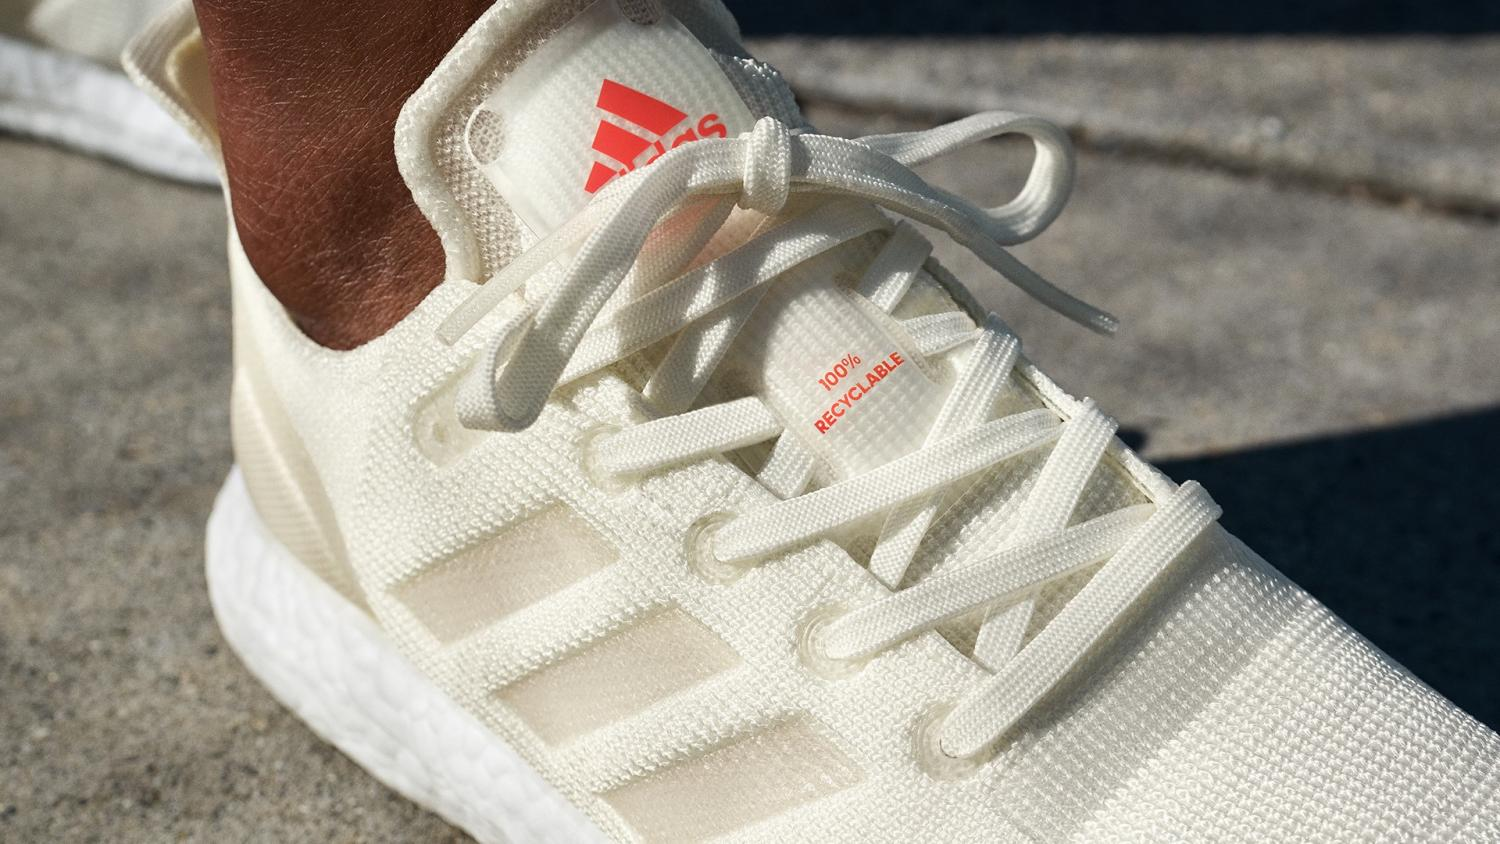 Adidas Creates First 100% Recyclable Sneaker; Shoe Brands are Thinking Green